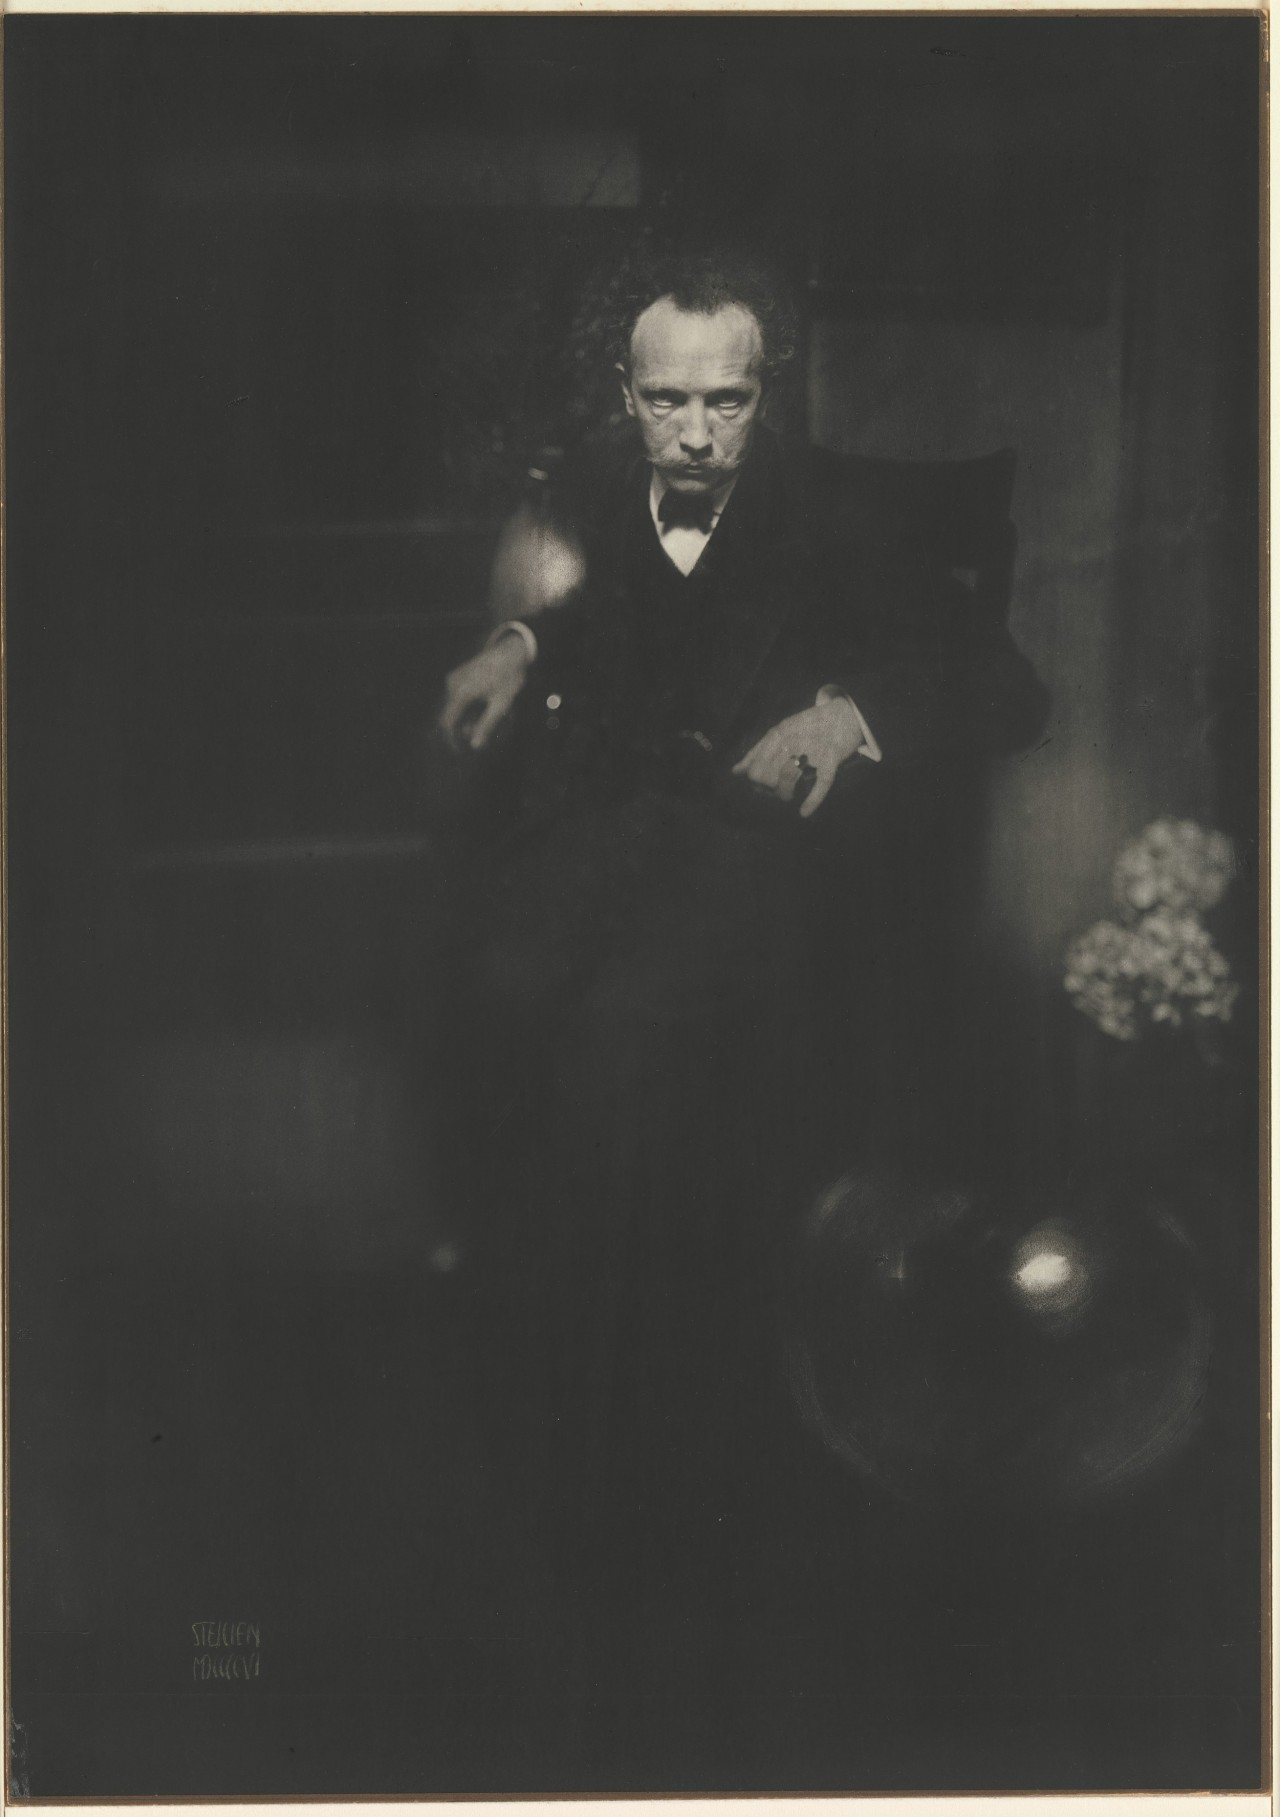 tierradentro:  Richard Strauss, 1904. Photo: Edward J. Steichen.